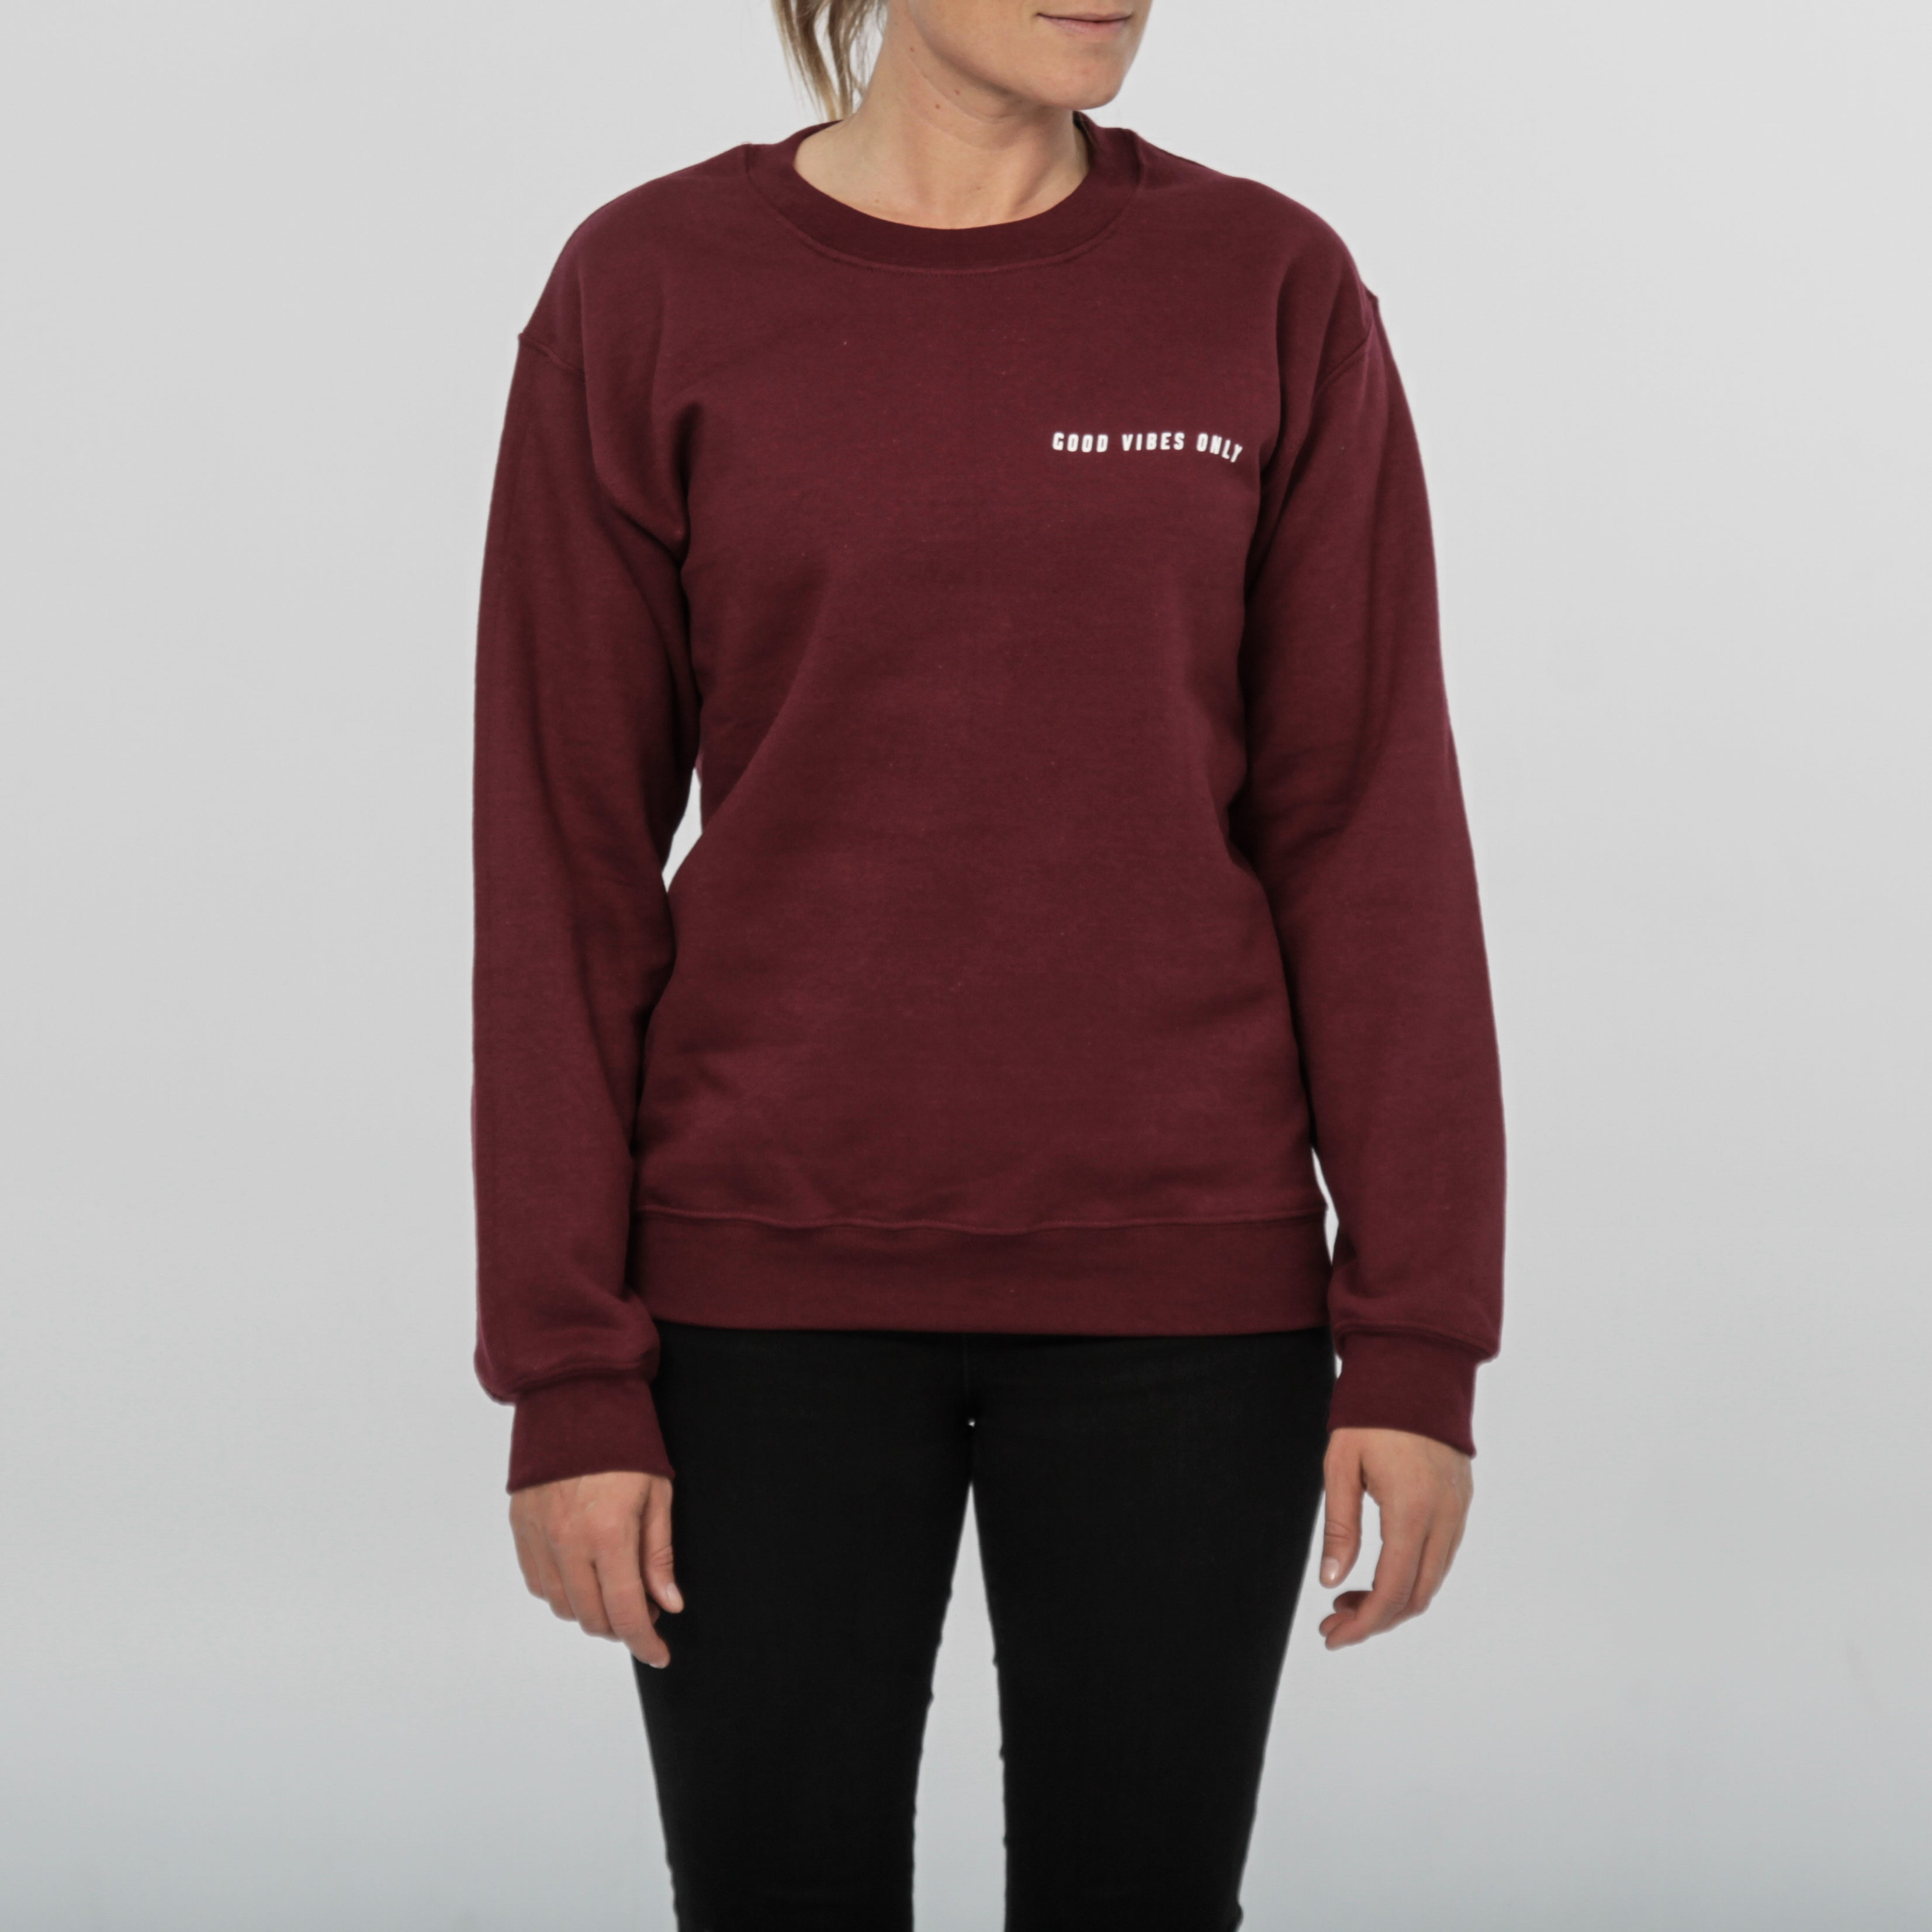 Good Vibes Only Crewneck - Burgundy - Out of the